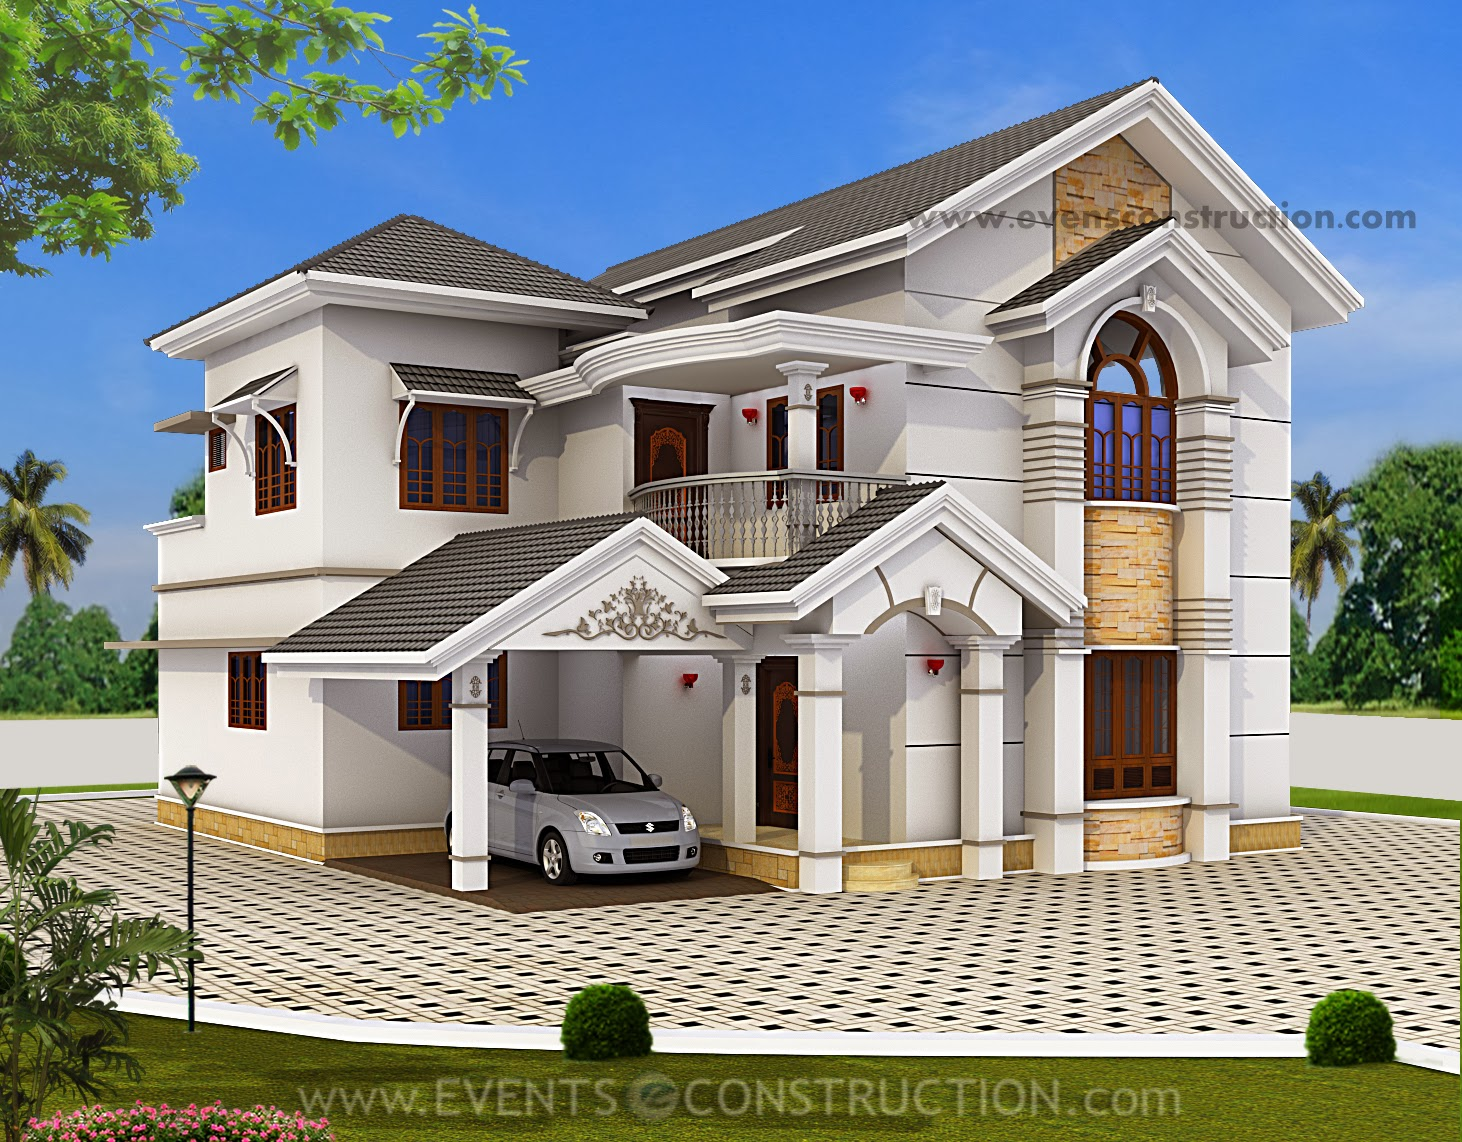 Evens construction pvt ltd 5 bedroom house elevation with for Indian bungalow designs photo gallery